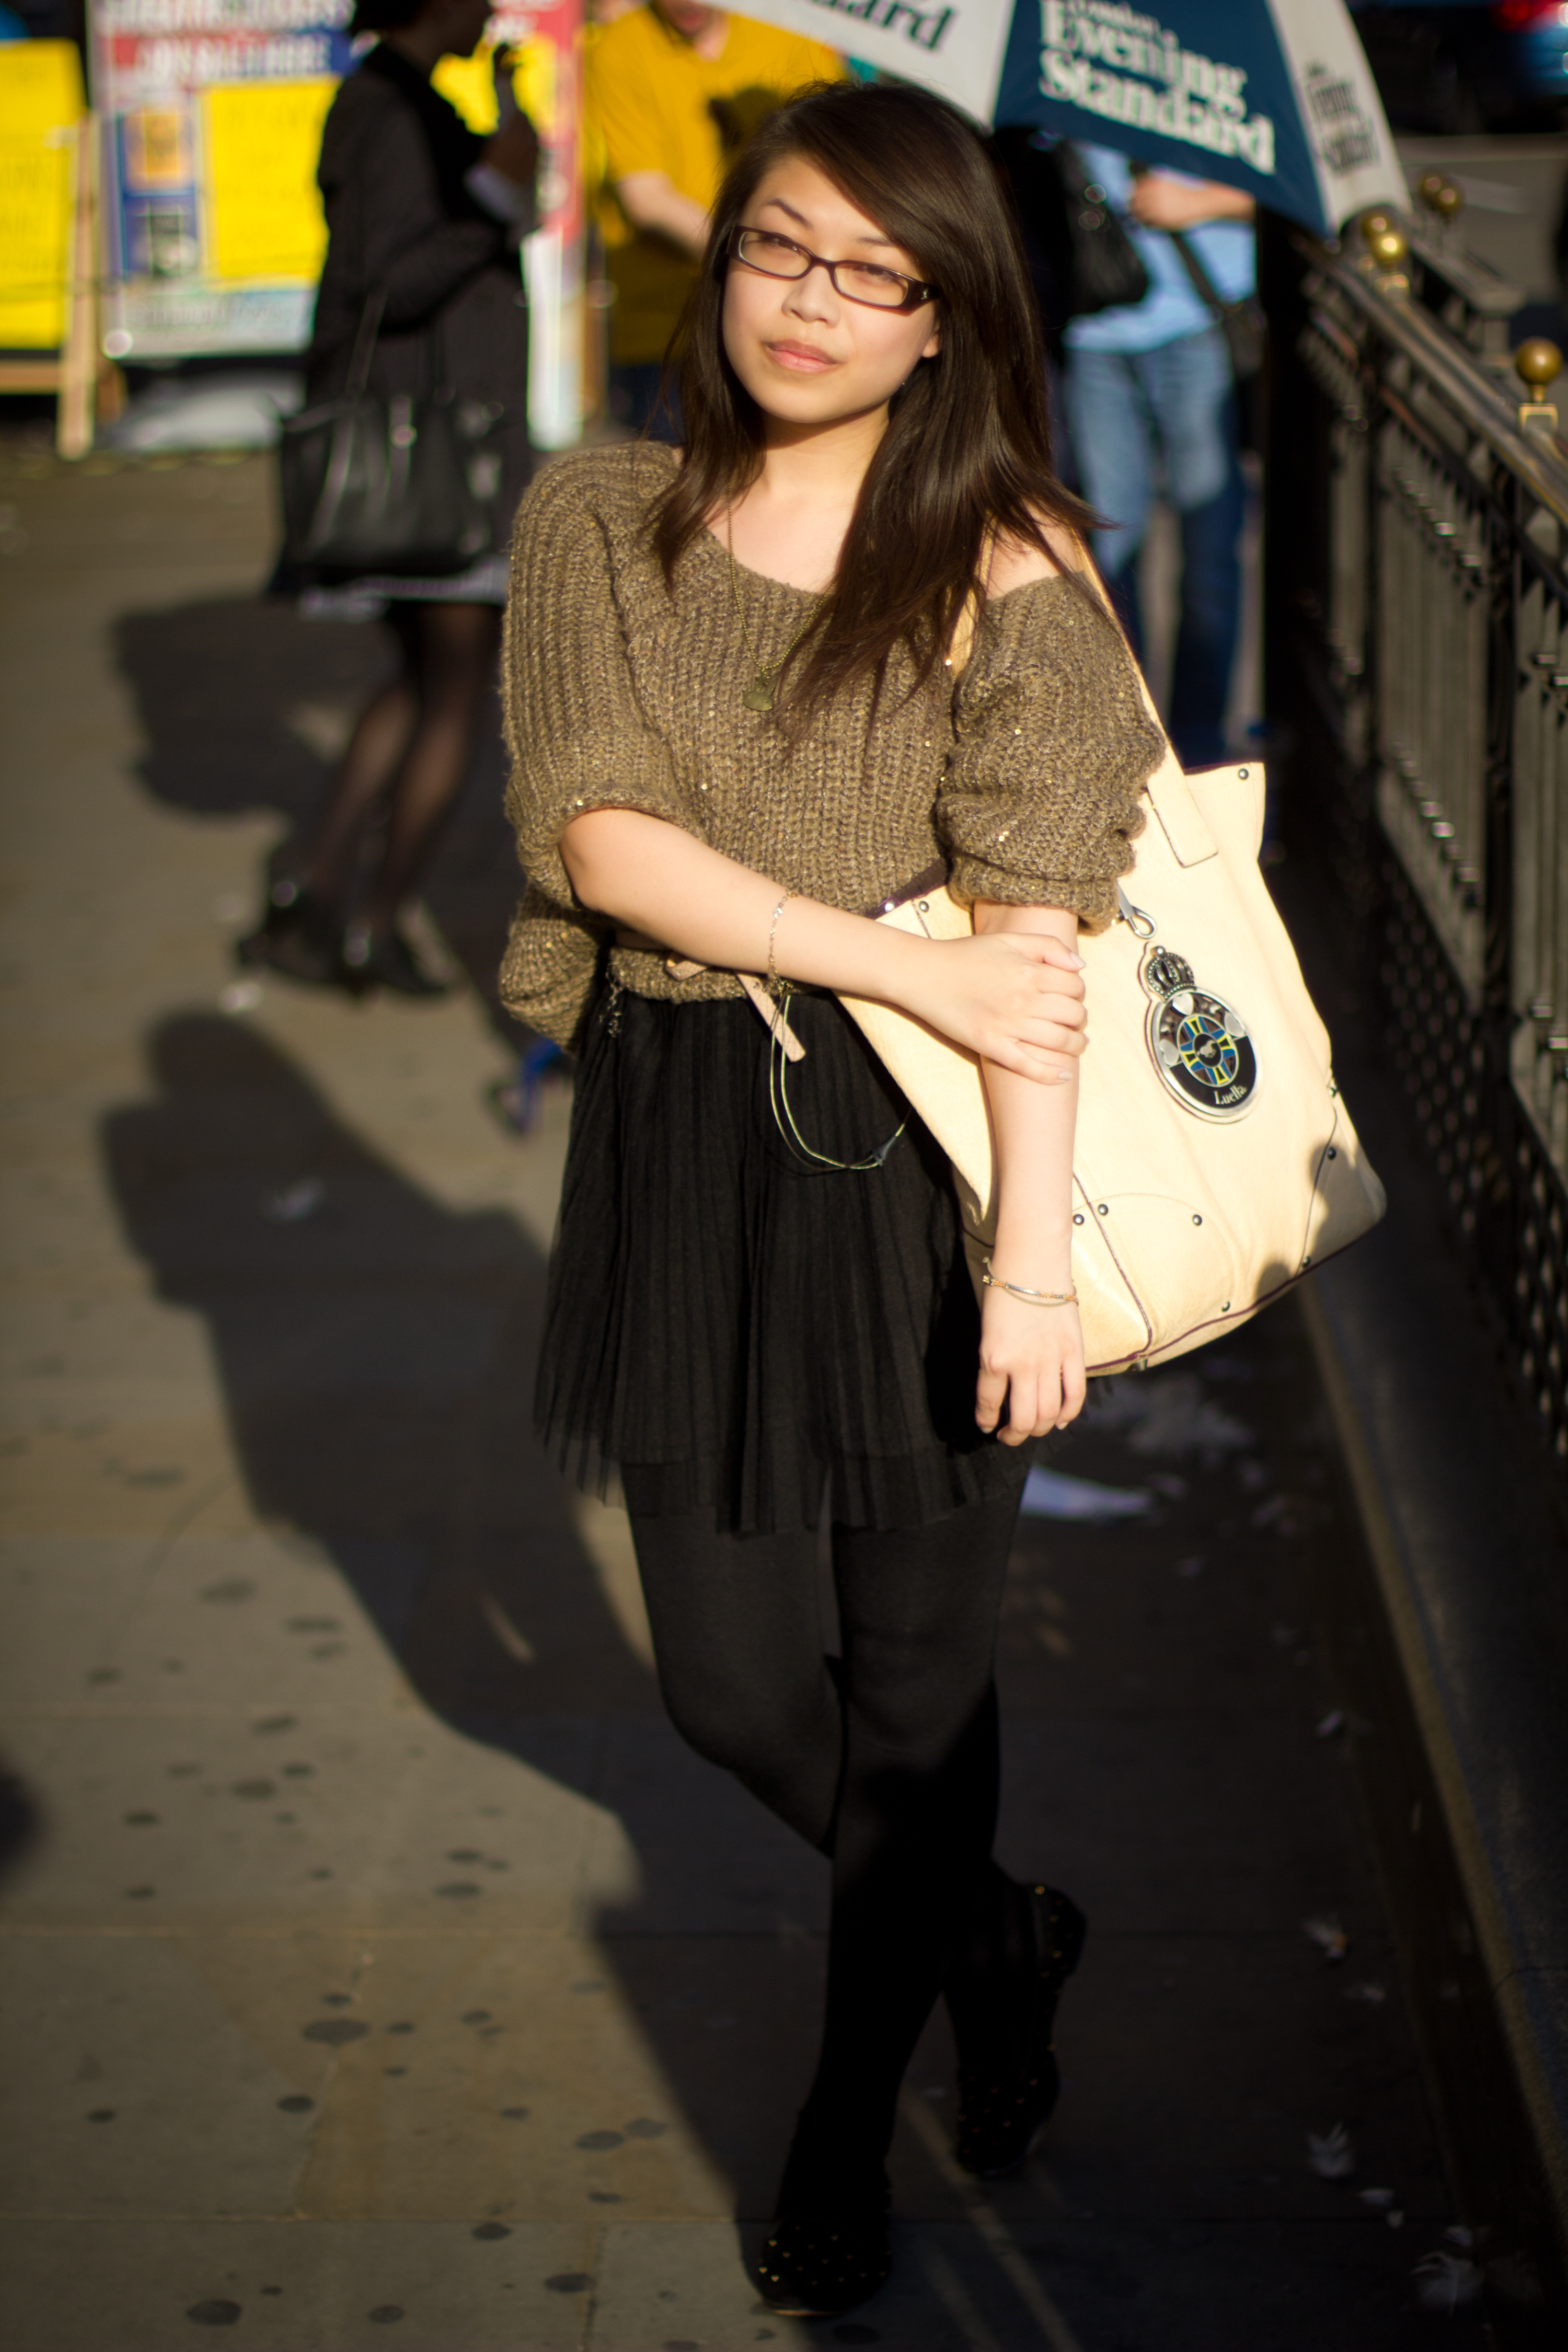 daisybutter - UK Style and Fashion Blog: what i wore, street style, london, wiwt, AW12, luella, tutu, piccadilly circus, 365strangers